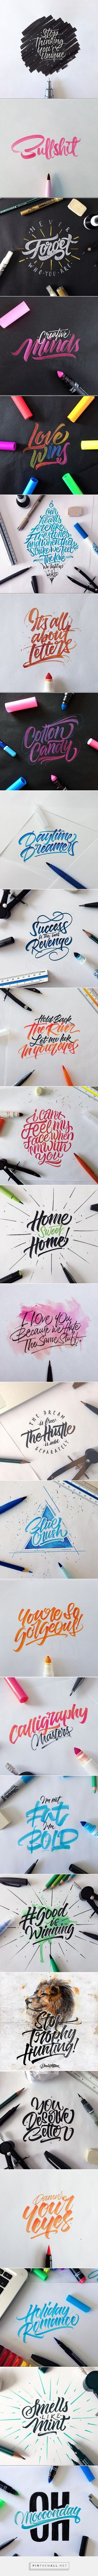 Crayola & Brushpen Lettering Set 3 by David Milan